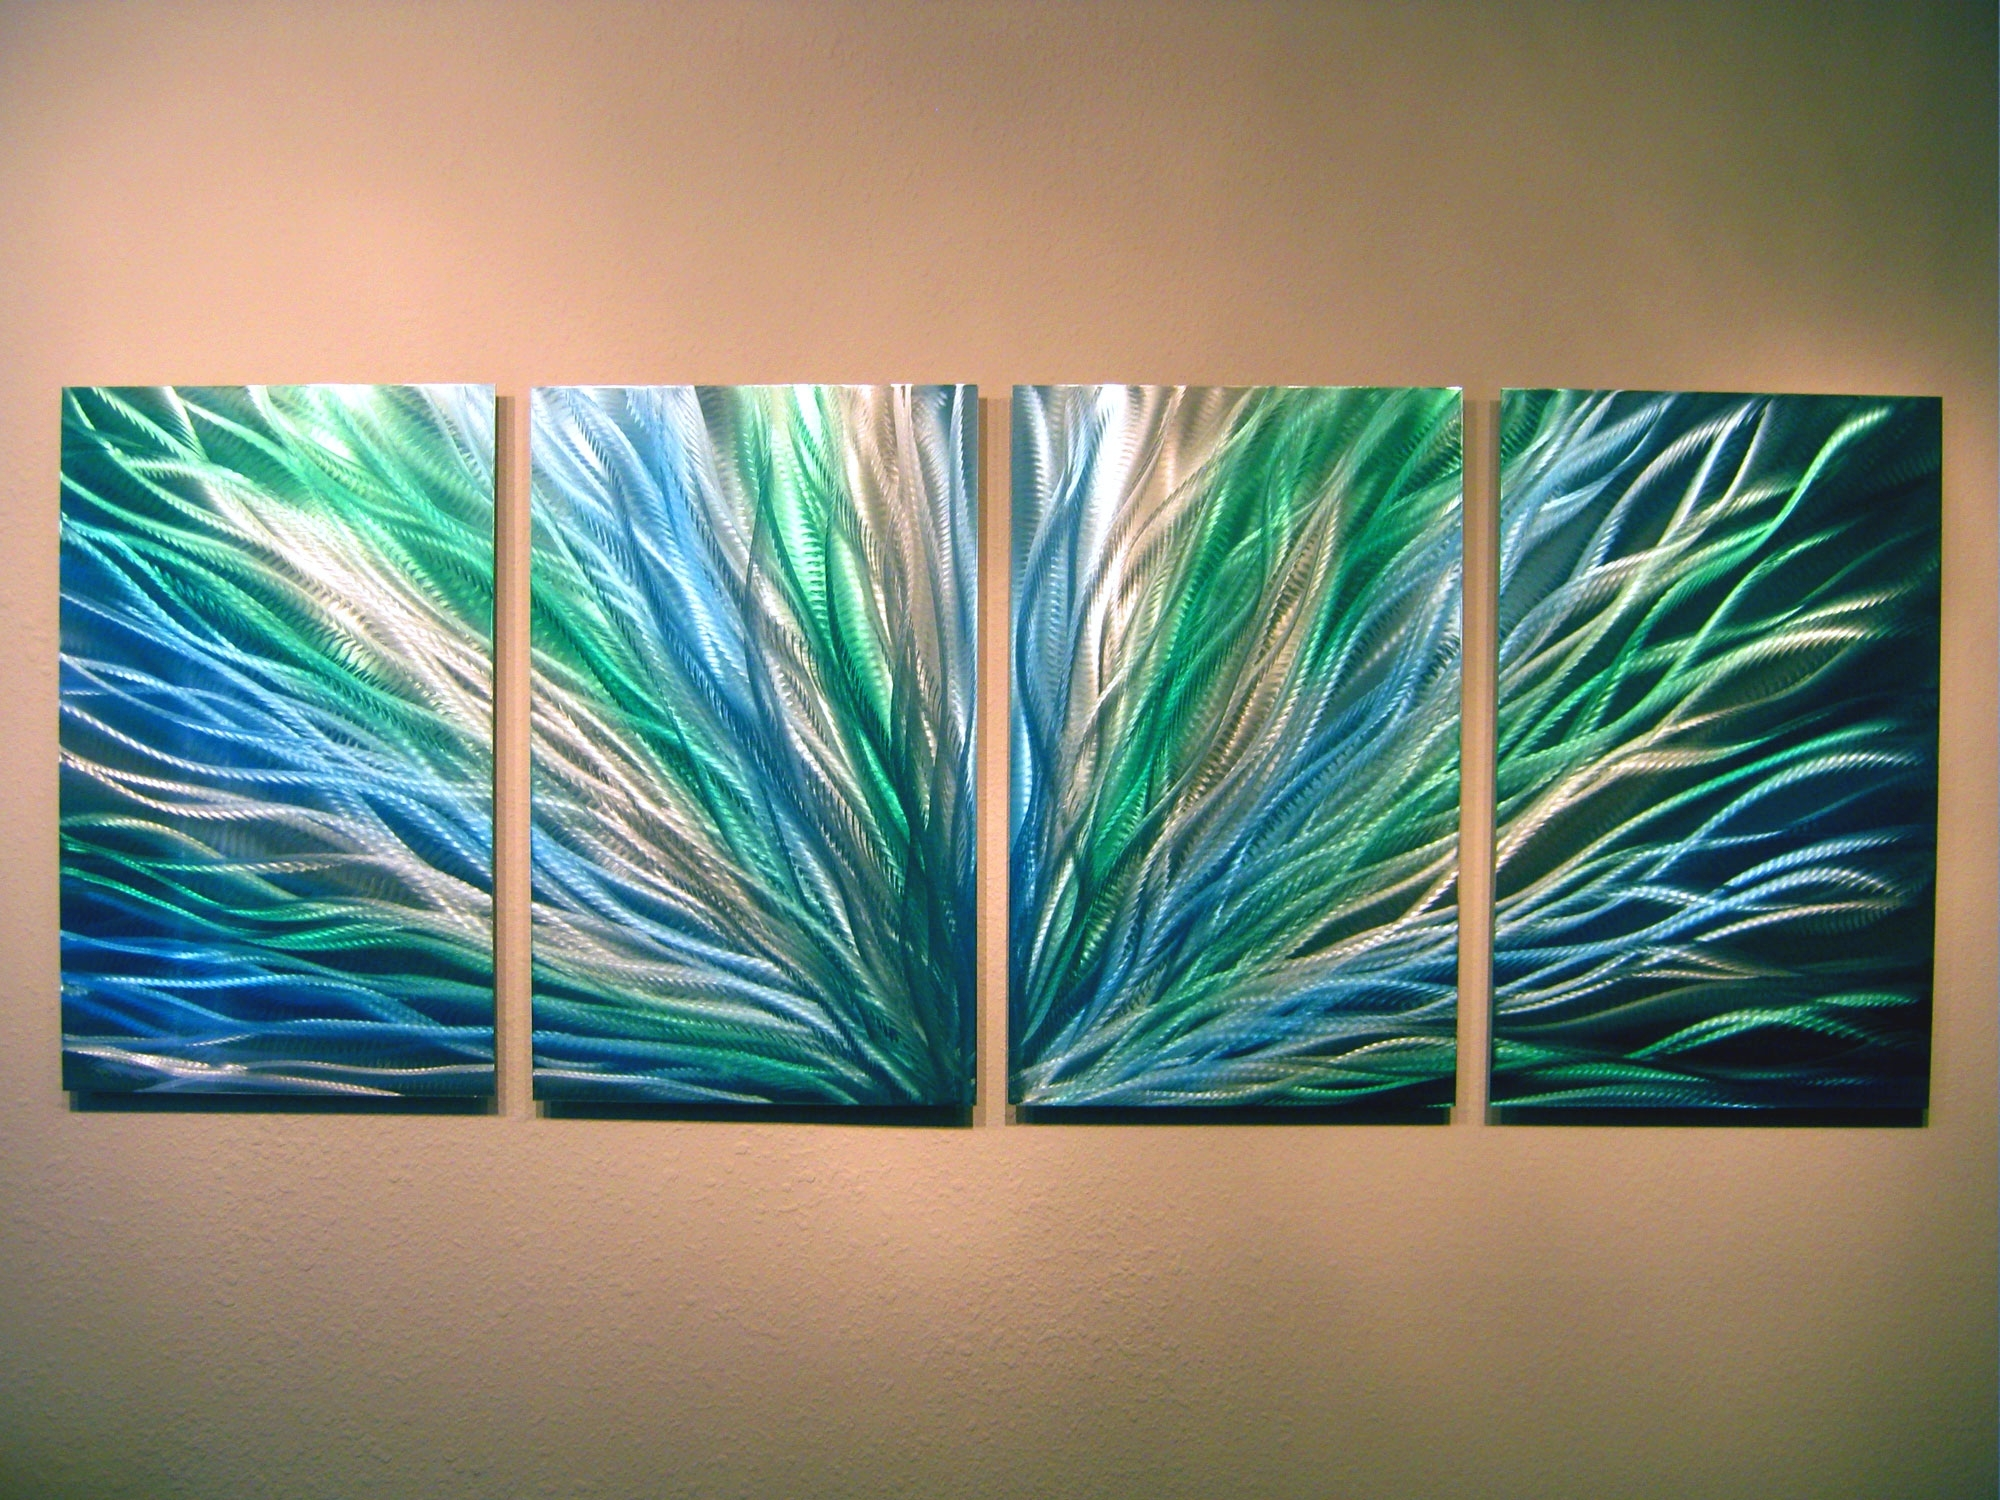 Abstract Metal Wall Art Painting Regarding Preferred Radiance Blue Green Abstract Metal Wall Art Contemporary Modern (View 14 of 15)